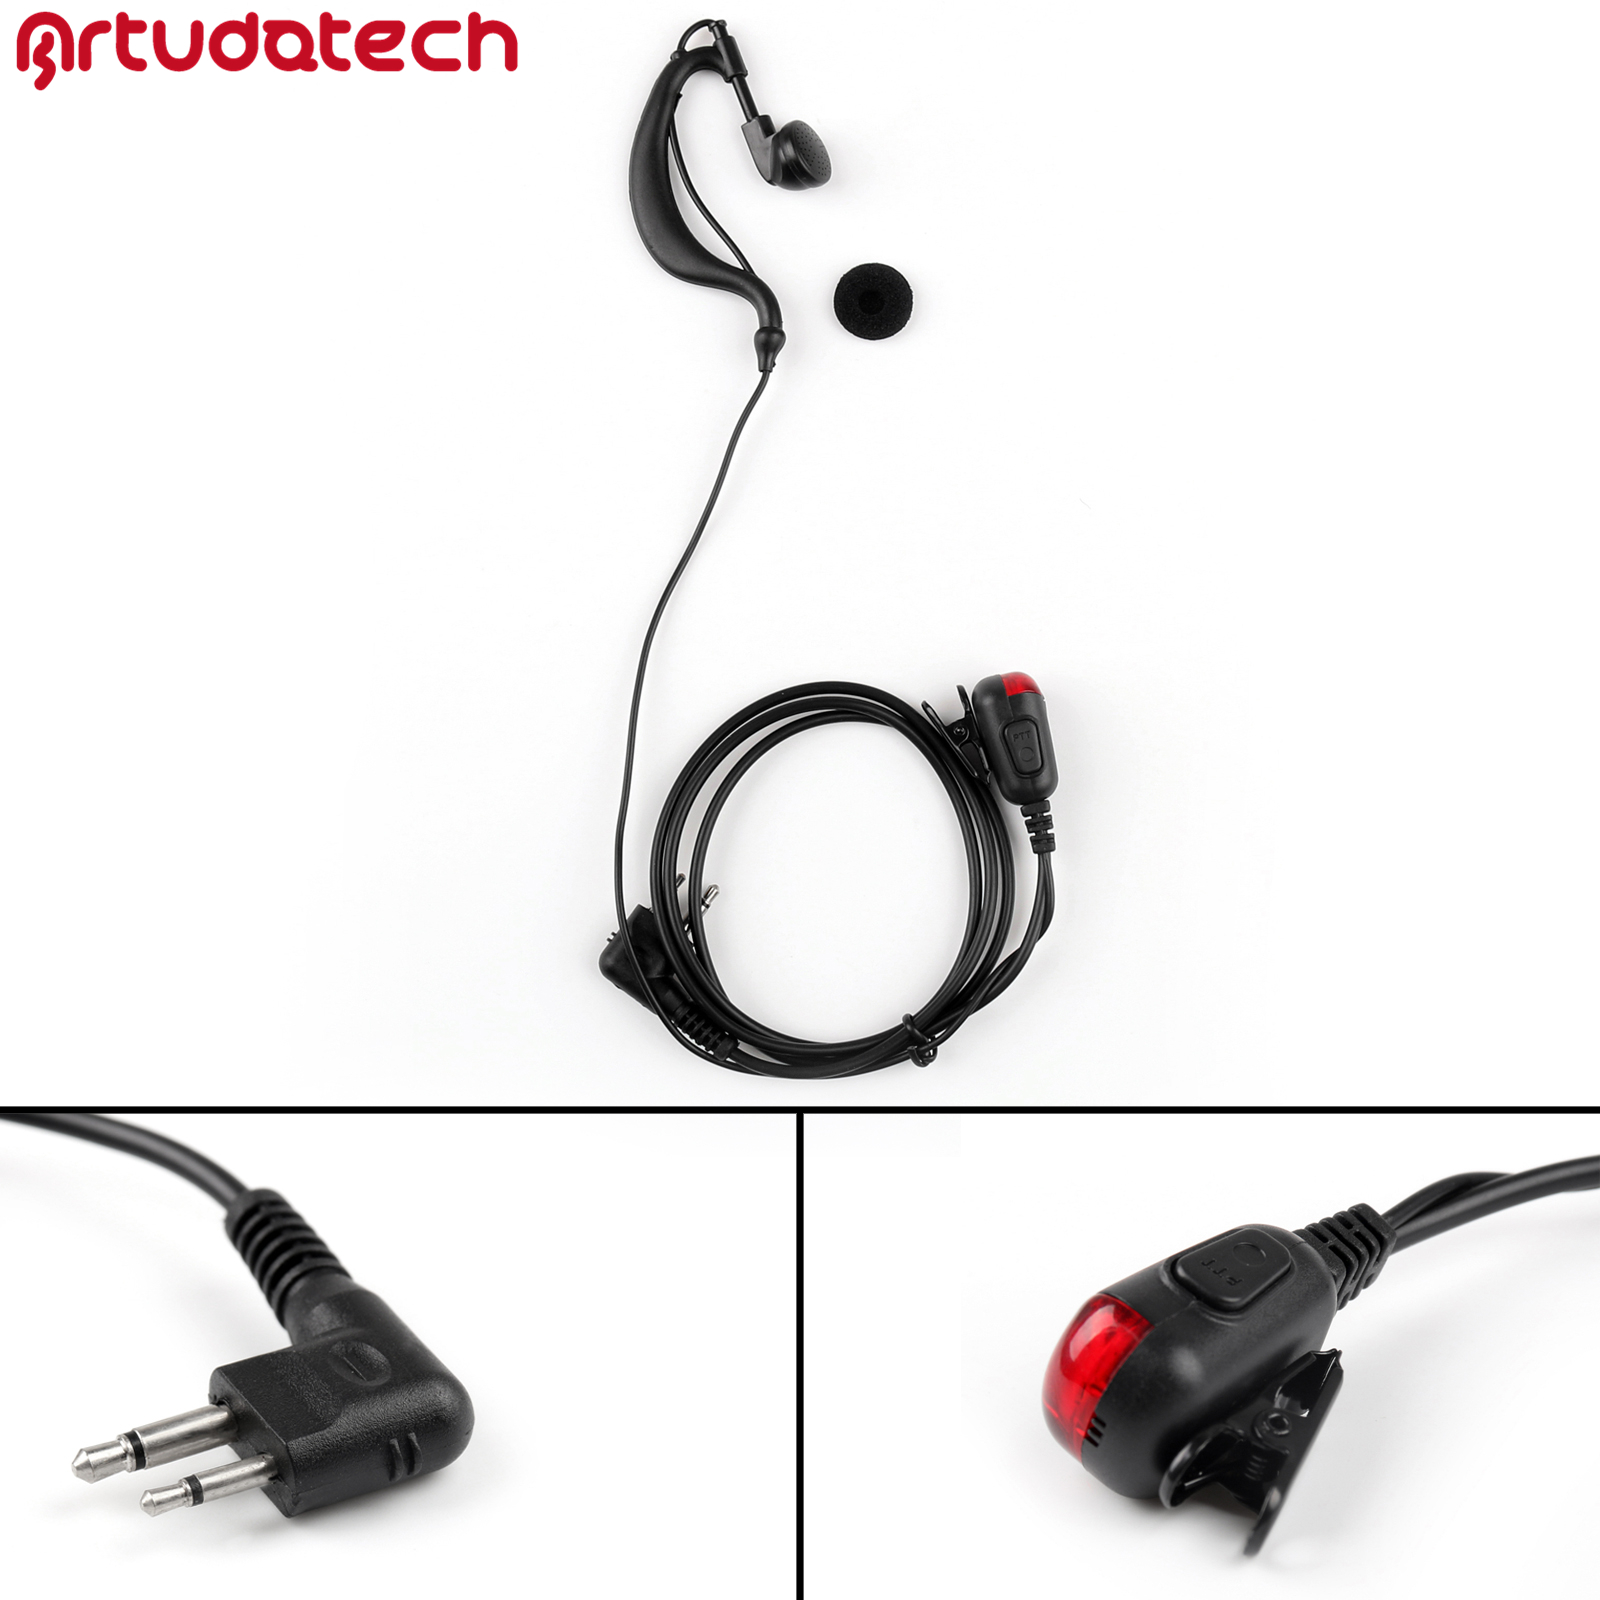 Artudatech 2Pin Ear-Hook Hanging Earpiece Headset With LED Light PTT For Motorola GP88 GP88S CP88 CP040 CP100 CP110 CP125 CP150